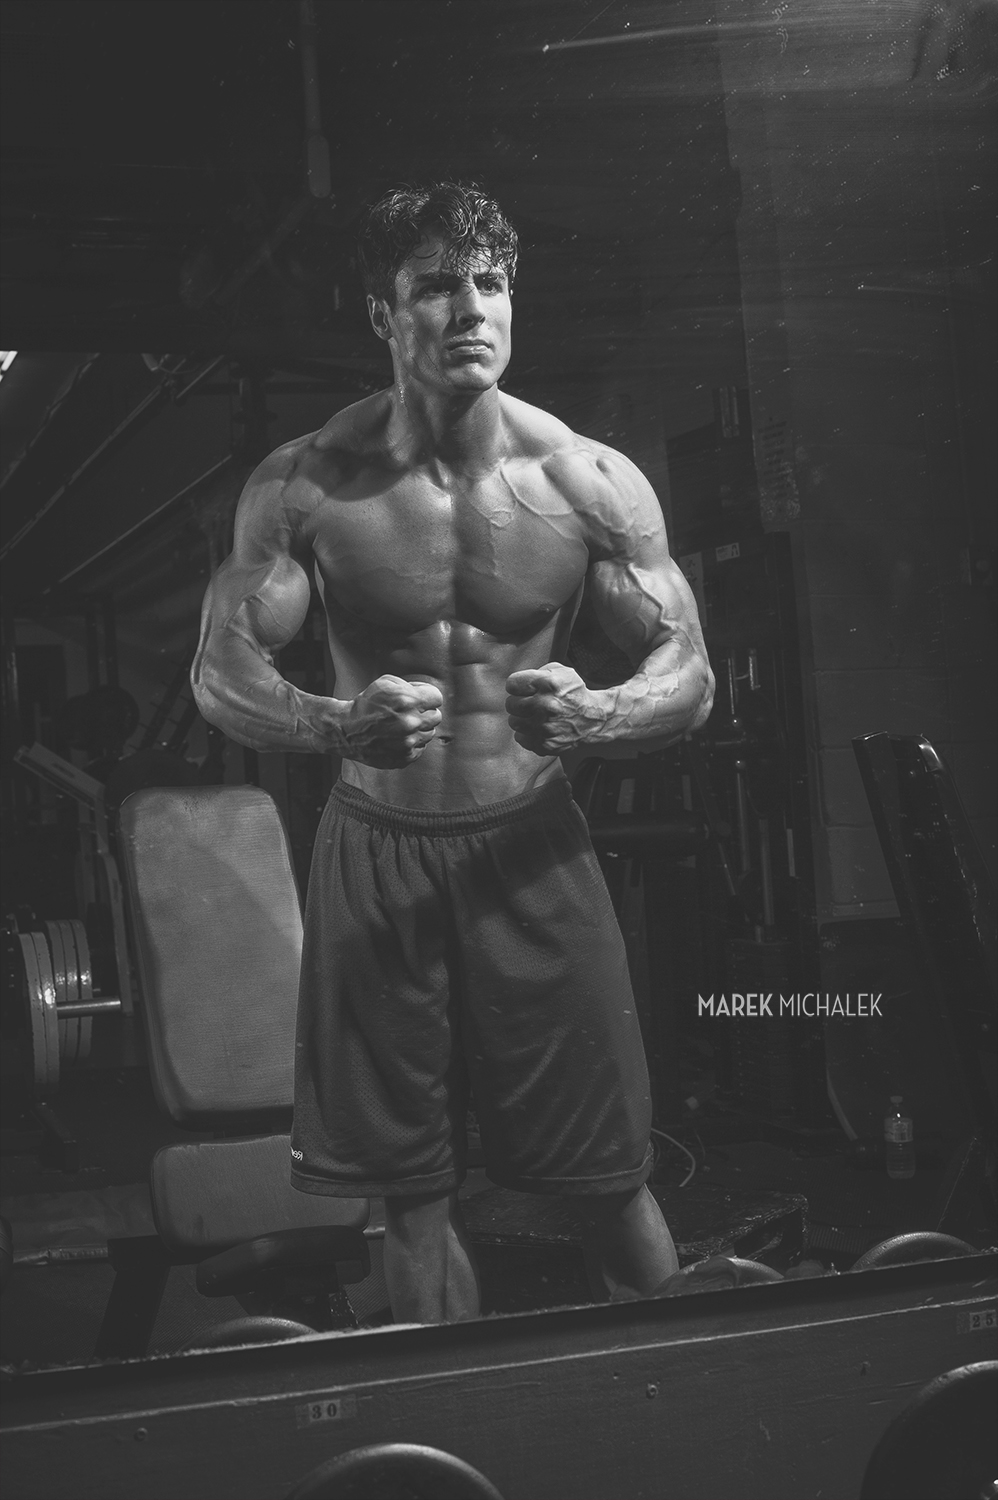 Hamilton Fitness Photographer - Marek Michalek 15.jpg